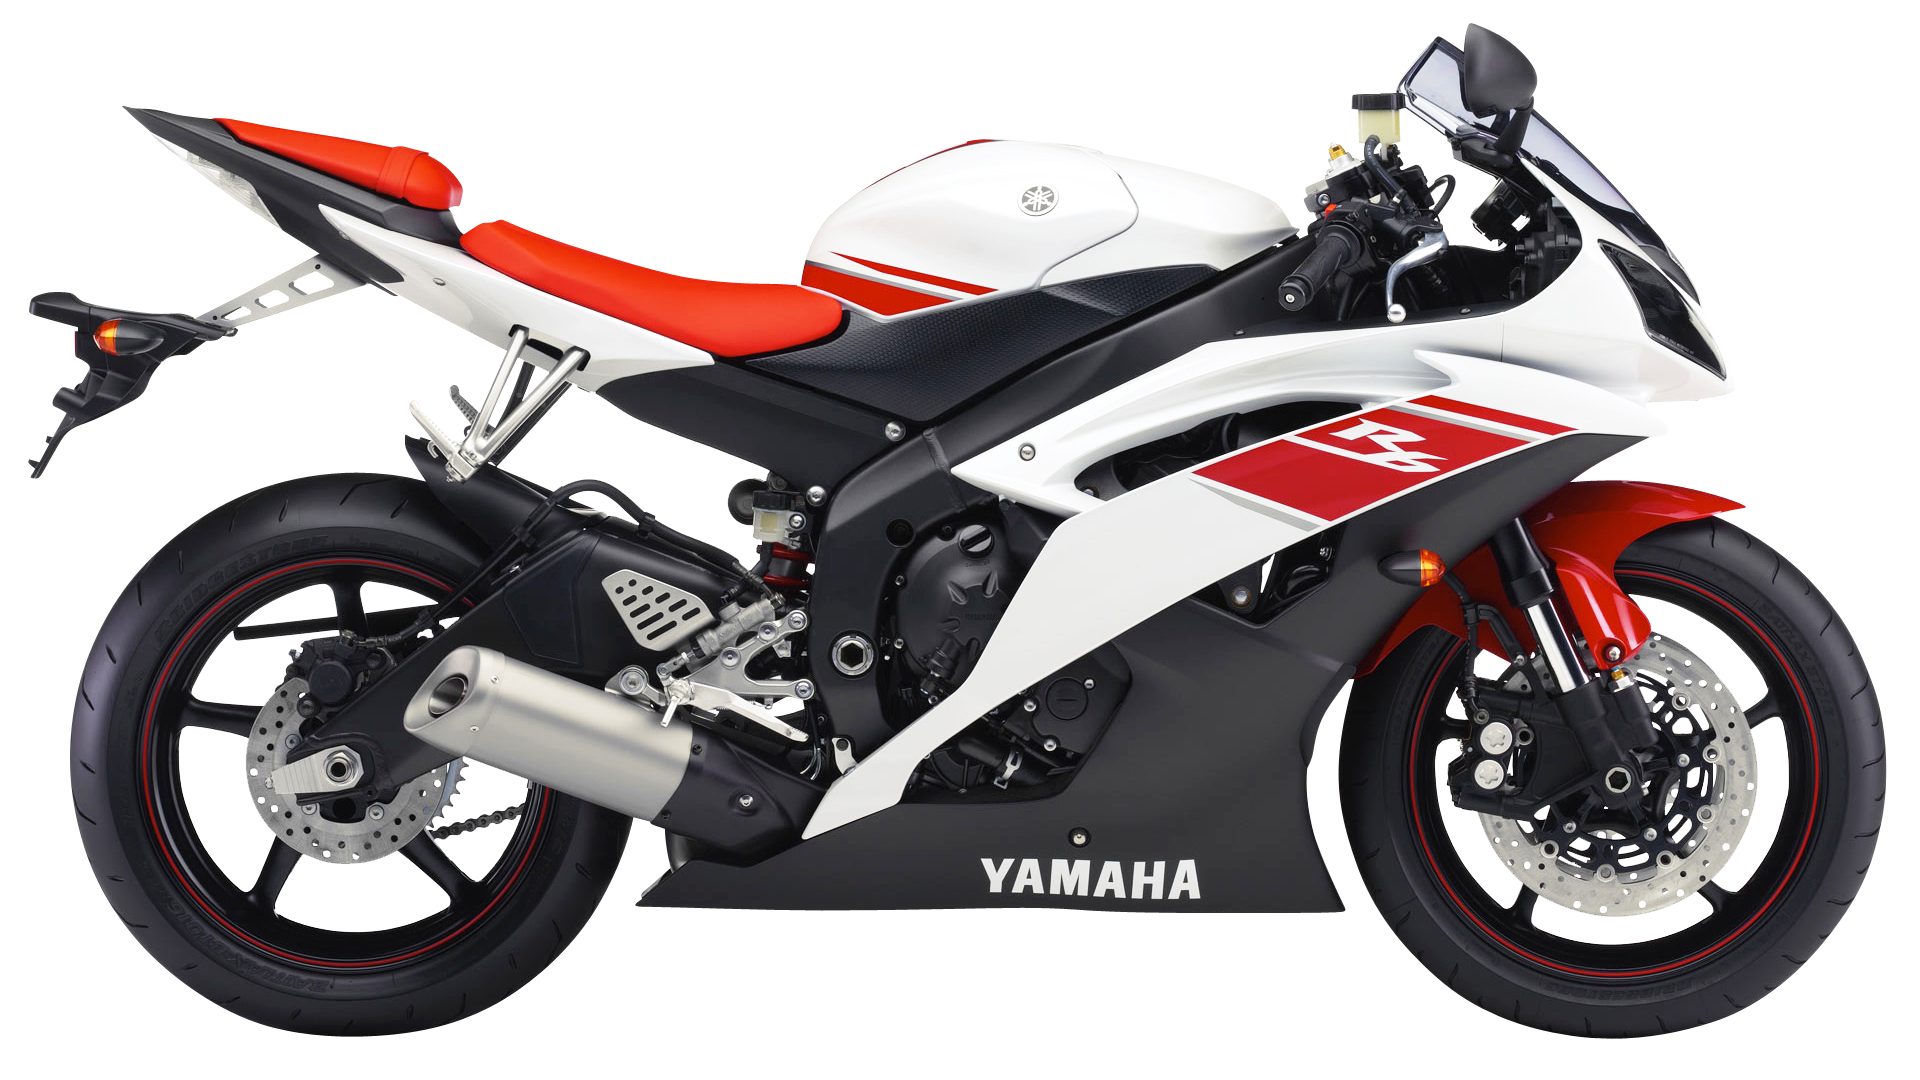 Yamaha YZF R6 Sport Motorcycle Bike PNG Image - PNG HD Bike